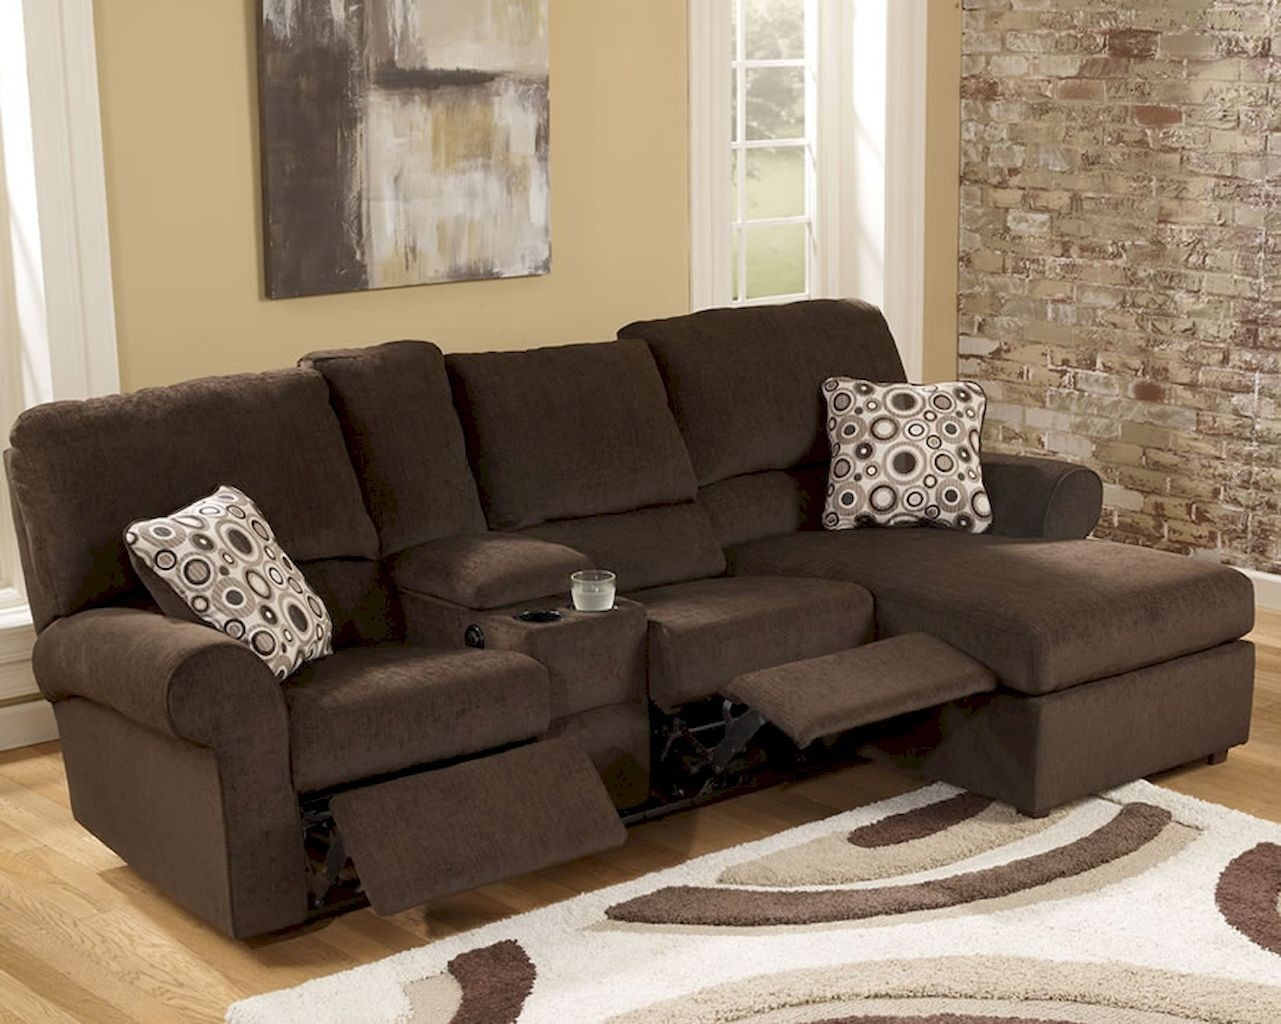 Leather Sectionals For Small Spaces